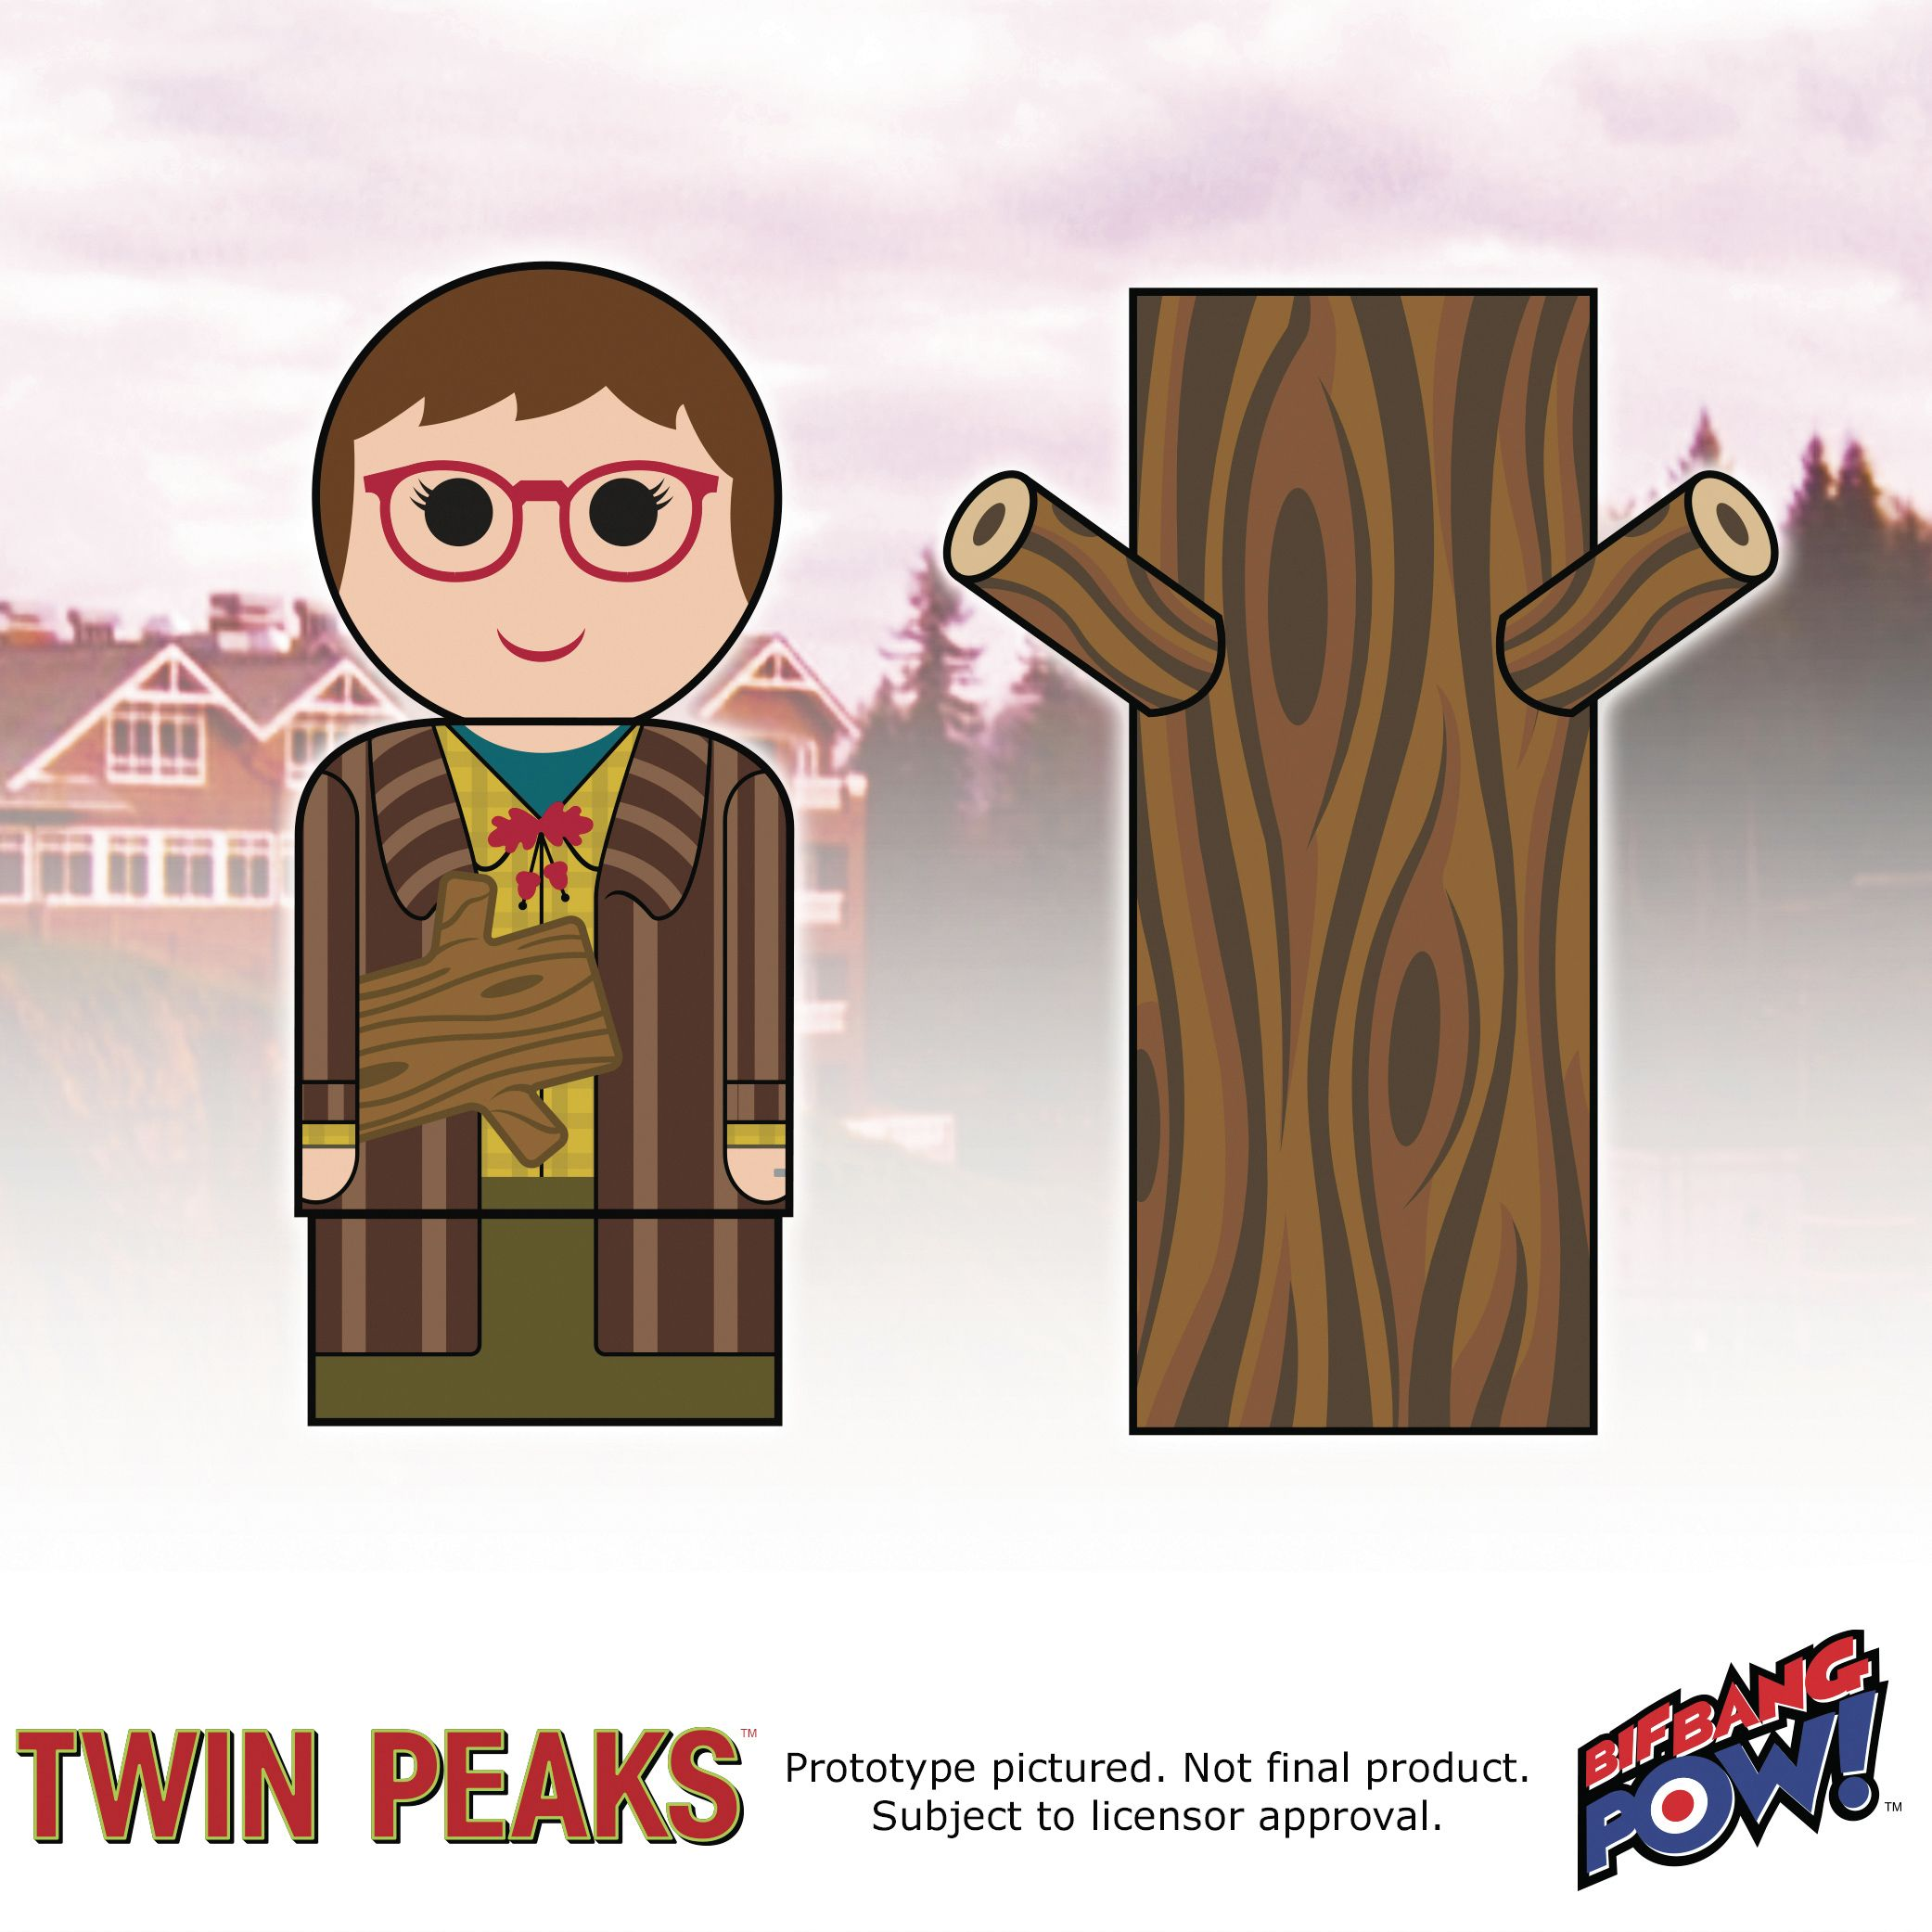 Boneca-Madeira-Twin-Peaks-Log-Lady-and-Log-Pin-Mate-Wooden-Figure-Set-02